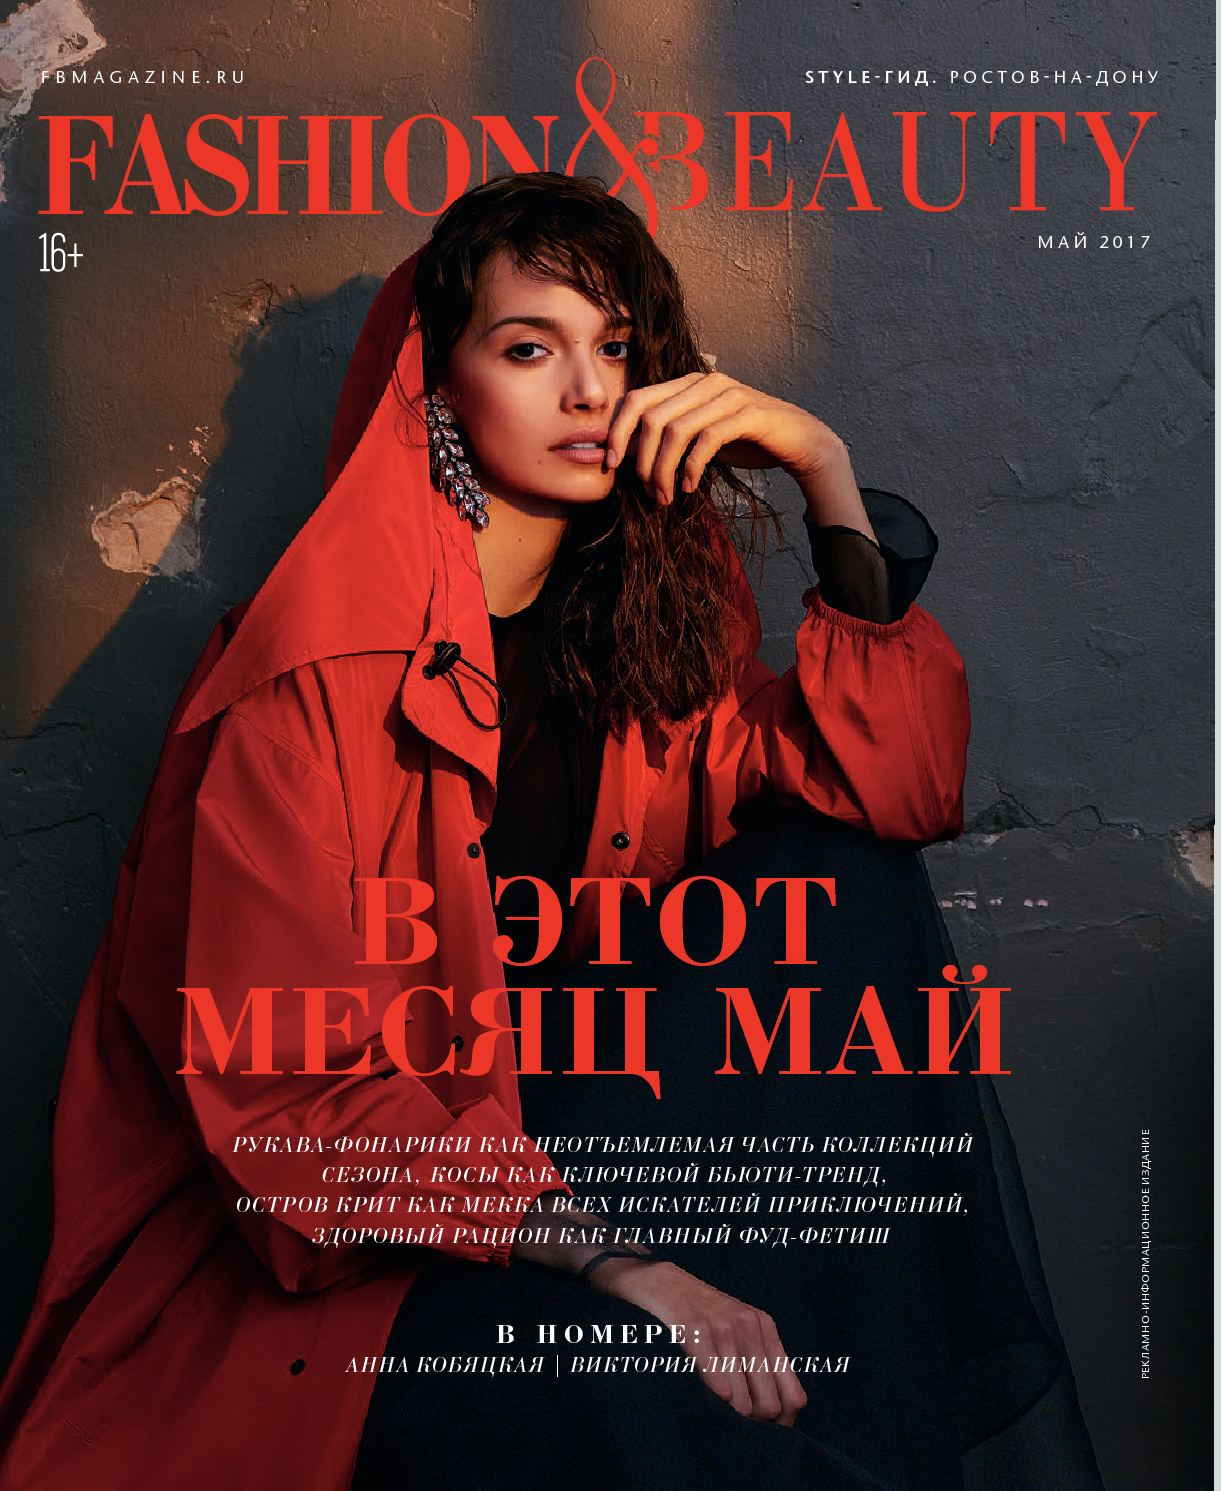 Fashion&Beauty МАЙ 2017